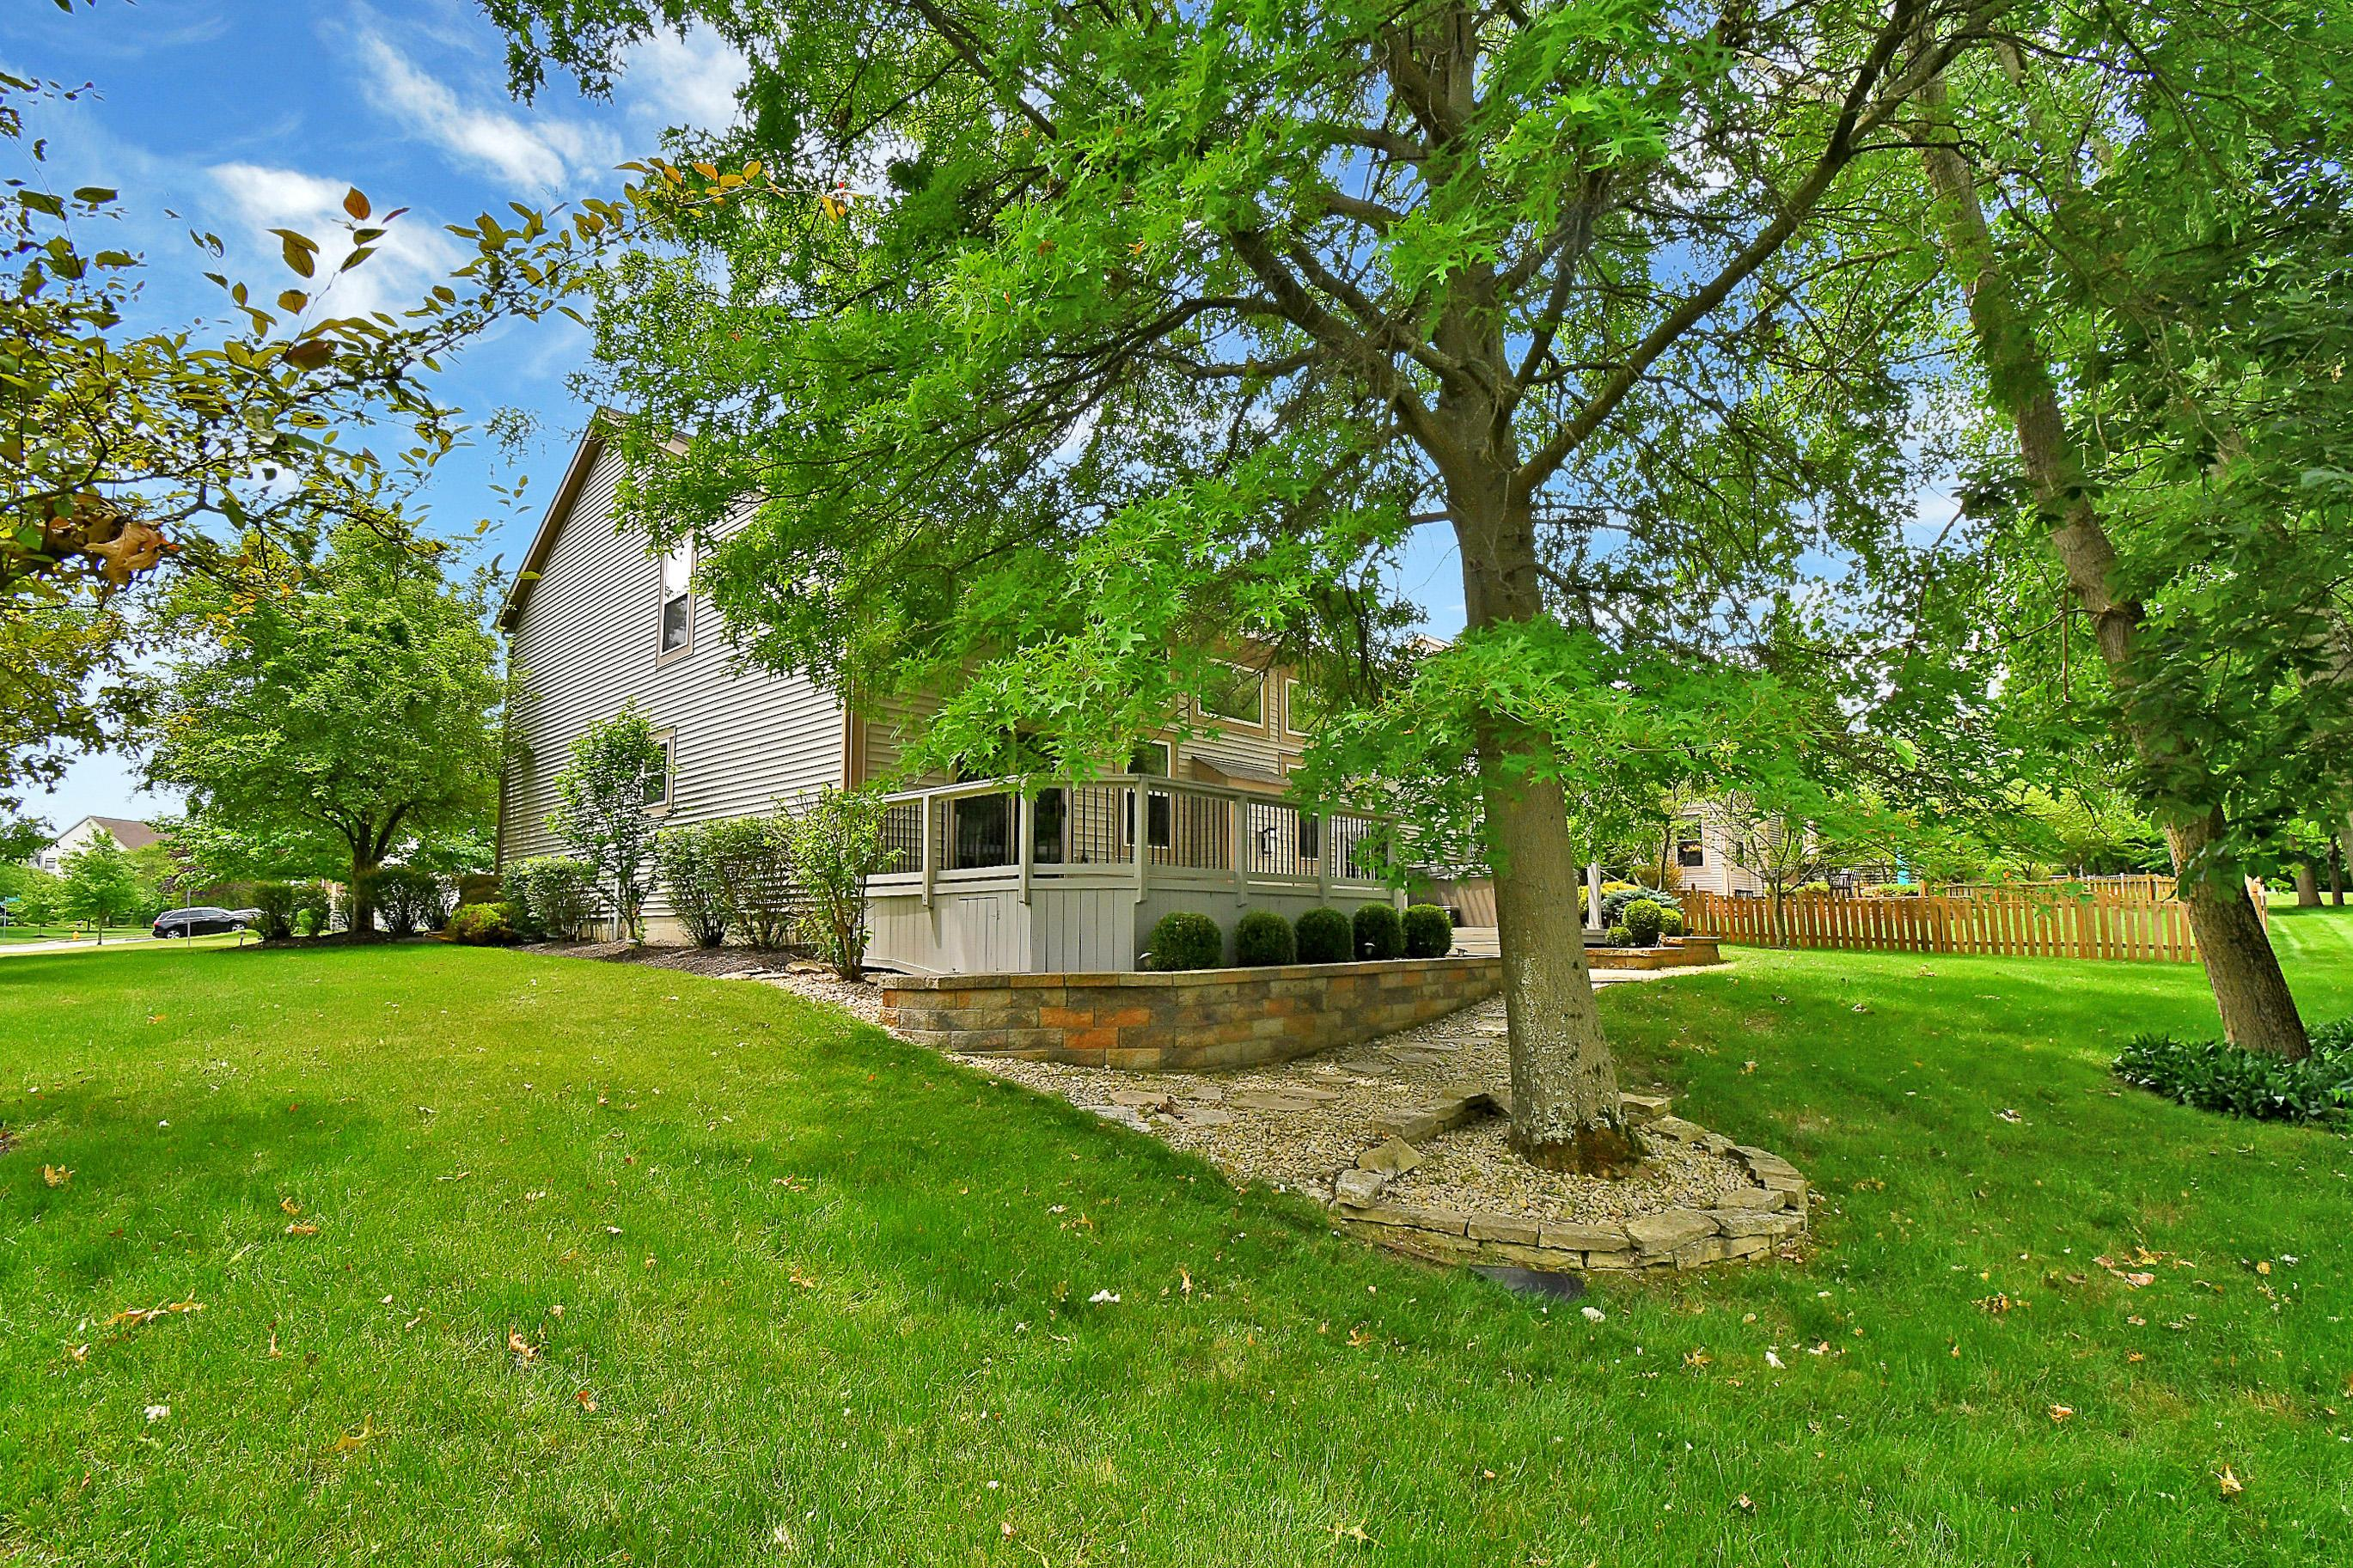 2747 Roe Drive, Lewis Center, Ohio 43035, 3 Bedrooms Bedrooms, ,4 BathroomsBathrooms,Residential,For Sale,Roe,220020805